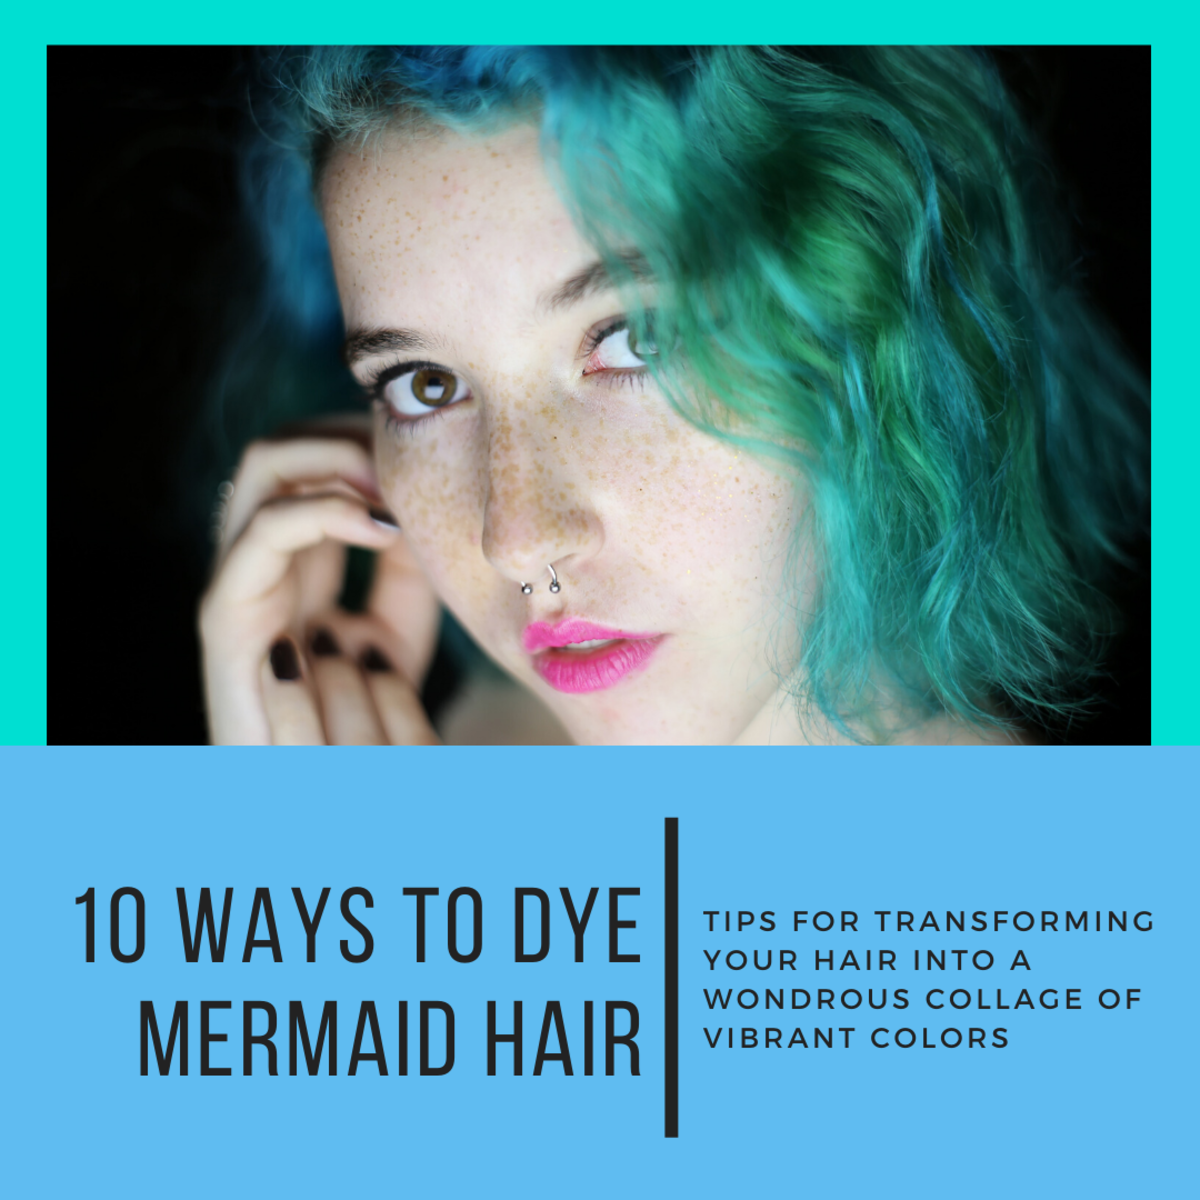 This article will break down 10 different kinds of mermaid hair and how you can go about dying your hair to look like them.